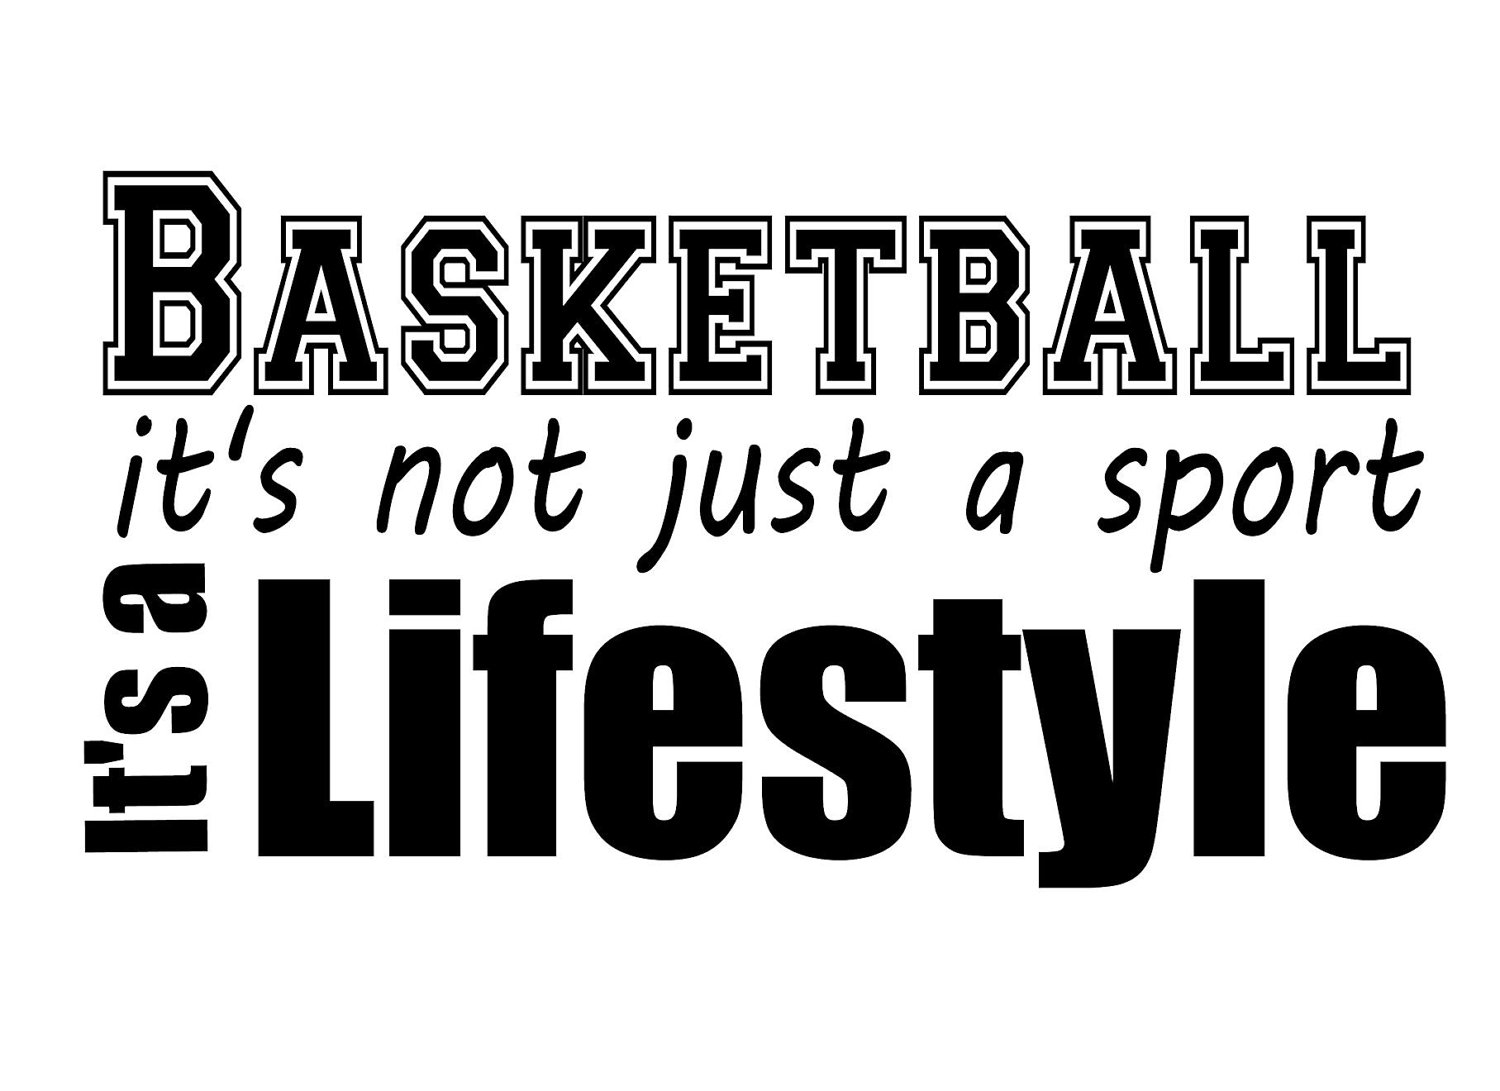 Girls Basketball Quotes Motivational Sports Quotesgram